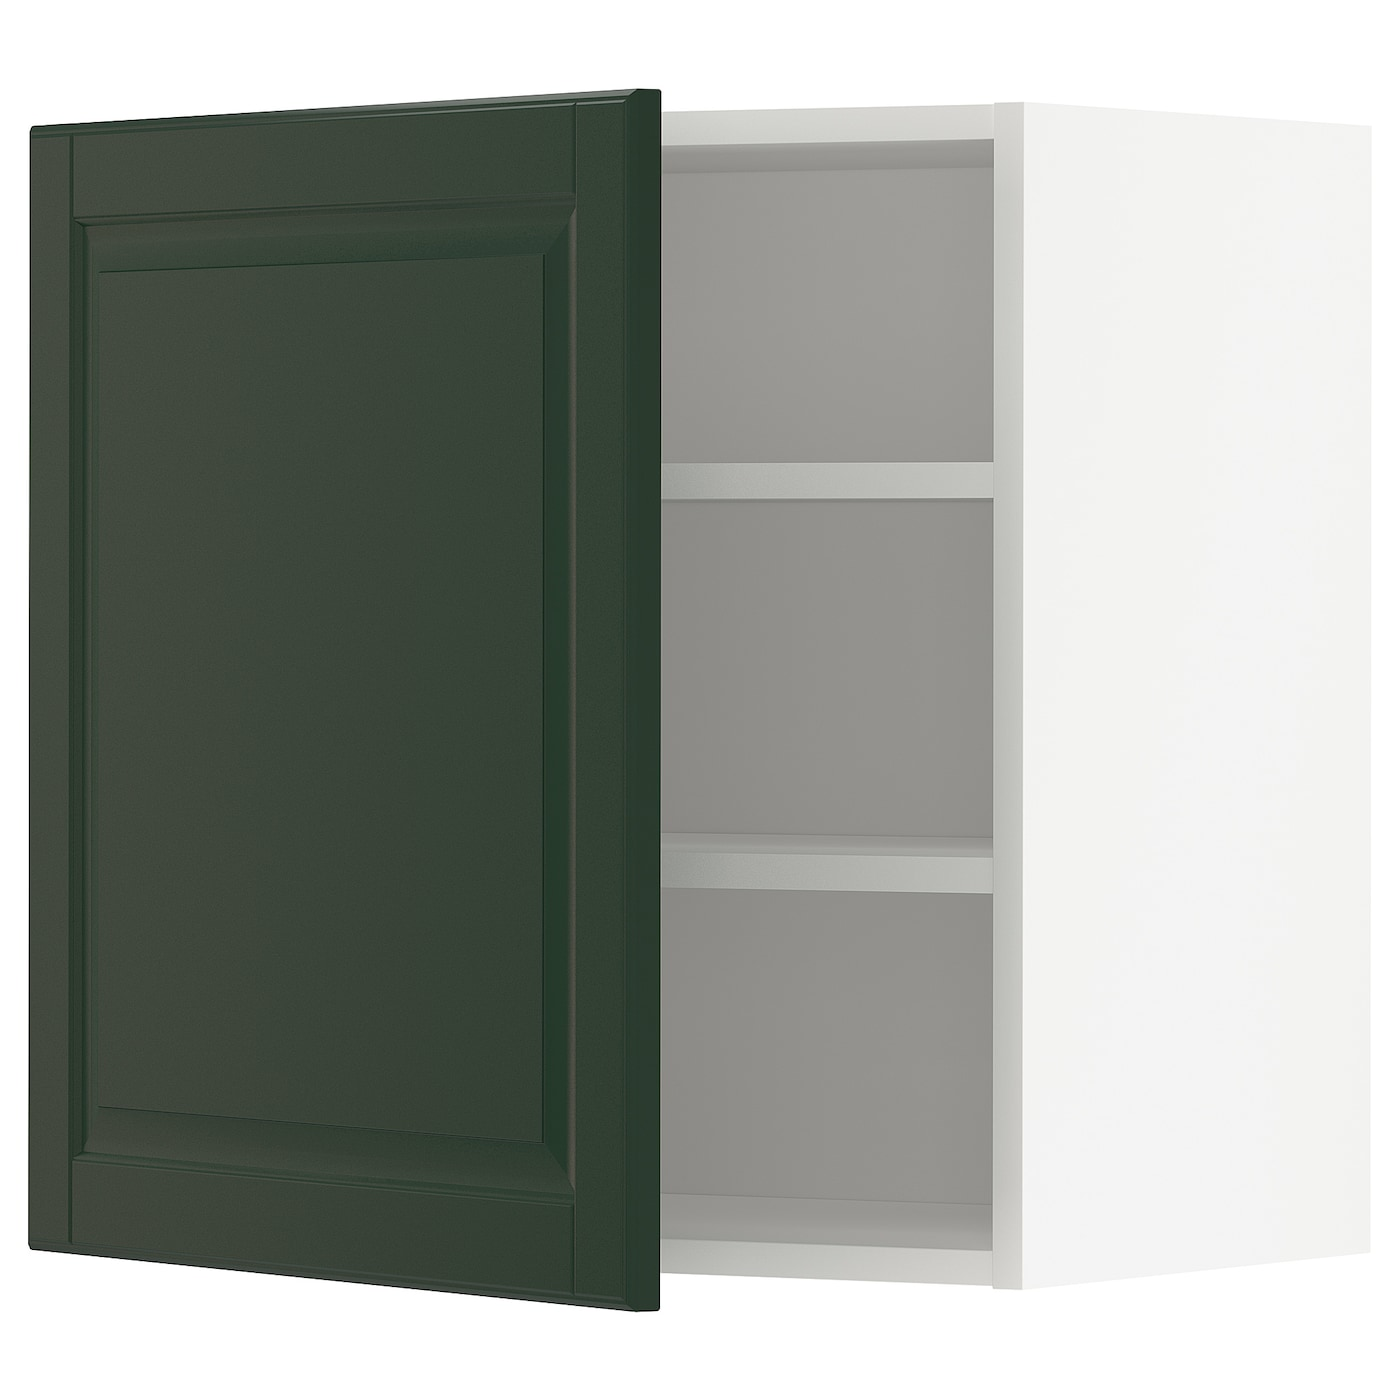 Wall Cabinet With Shelves Metod White Bodbyn Dark Green